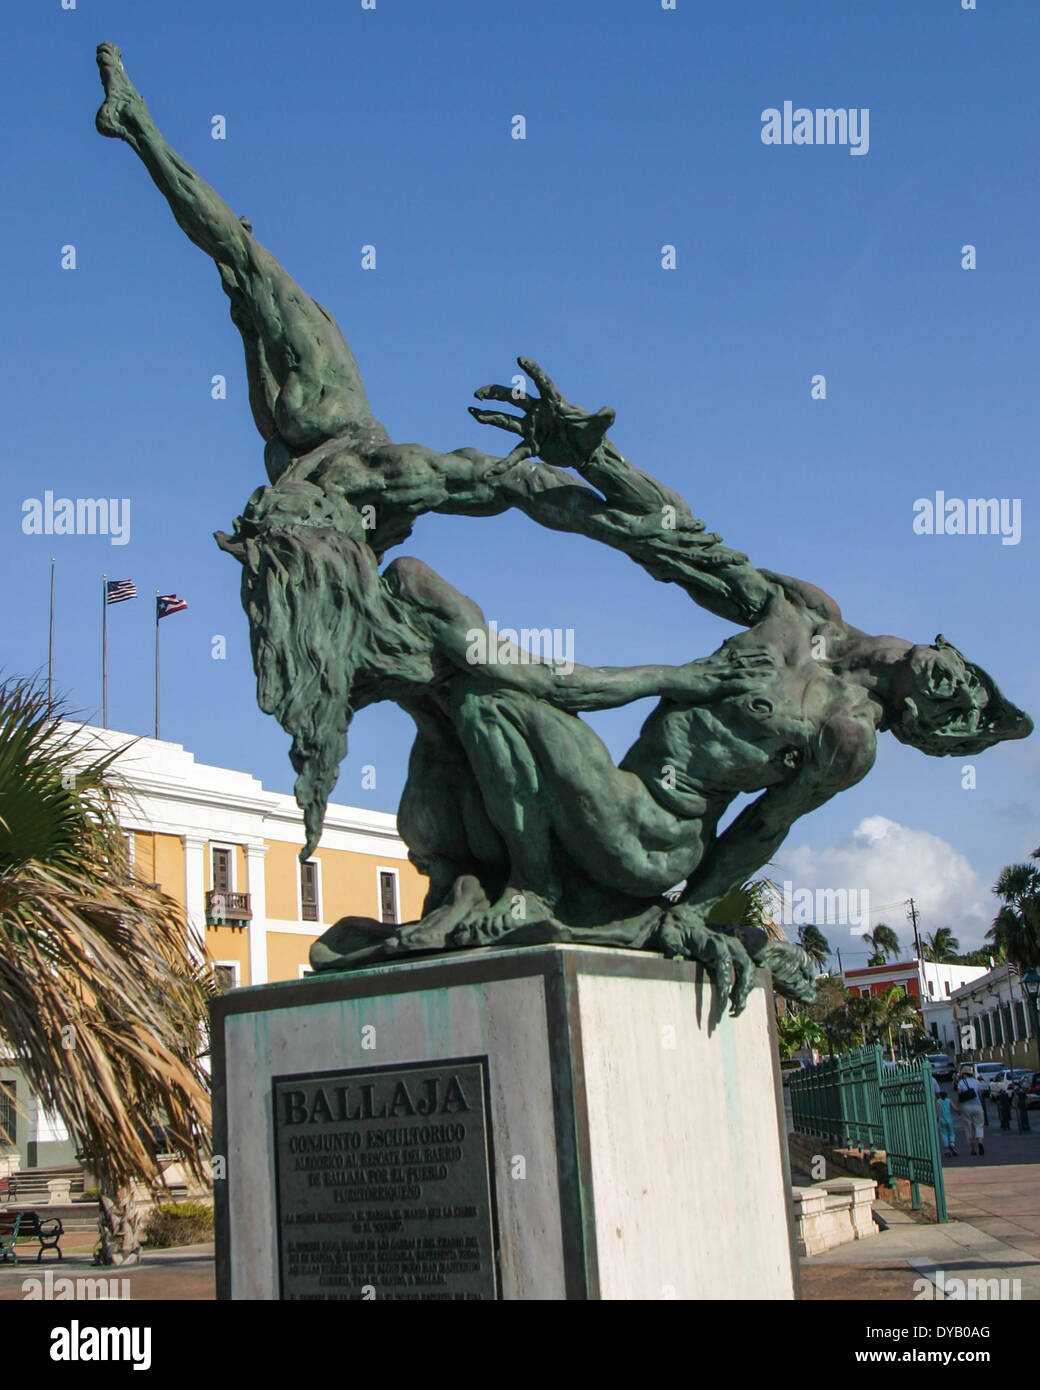 San Juan, Puerto Rico, US. 28th Mar, 2005. Created by Victor Ochoa and installed in 1992 at the Plaza del Cuartel de Ballajá the allegorical sculpture has three larger-than-life bronze figures intertwined in a struggle depicting the rescue of the district of Ballajá by the Puerto Rican people. The Ballajá is the old barracks area in Old San Juan (El Viejo San Juan) where Spanish troops were quartered. © Arnold Drapkin/ZUMAPRESS.com/Alamy Live News - Stock Image